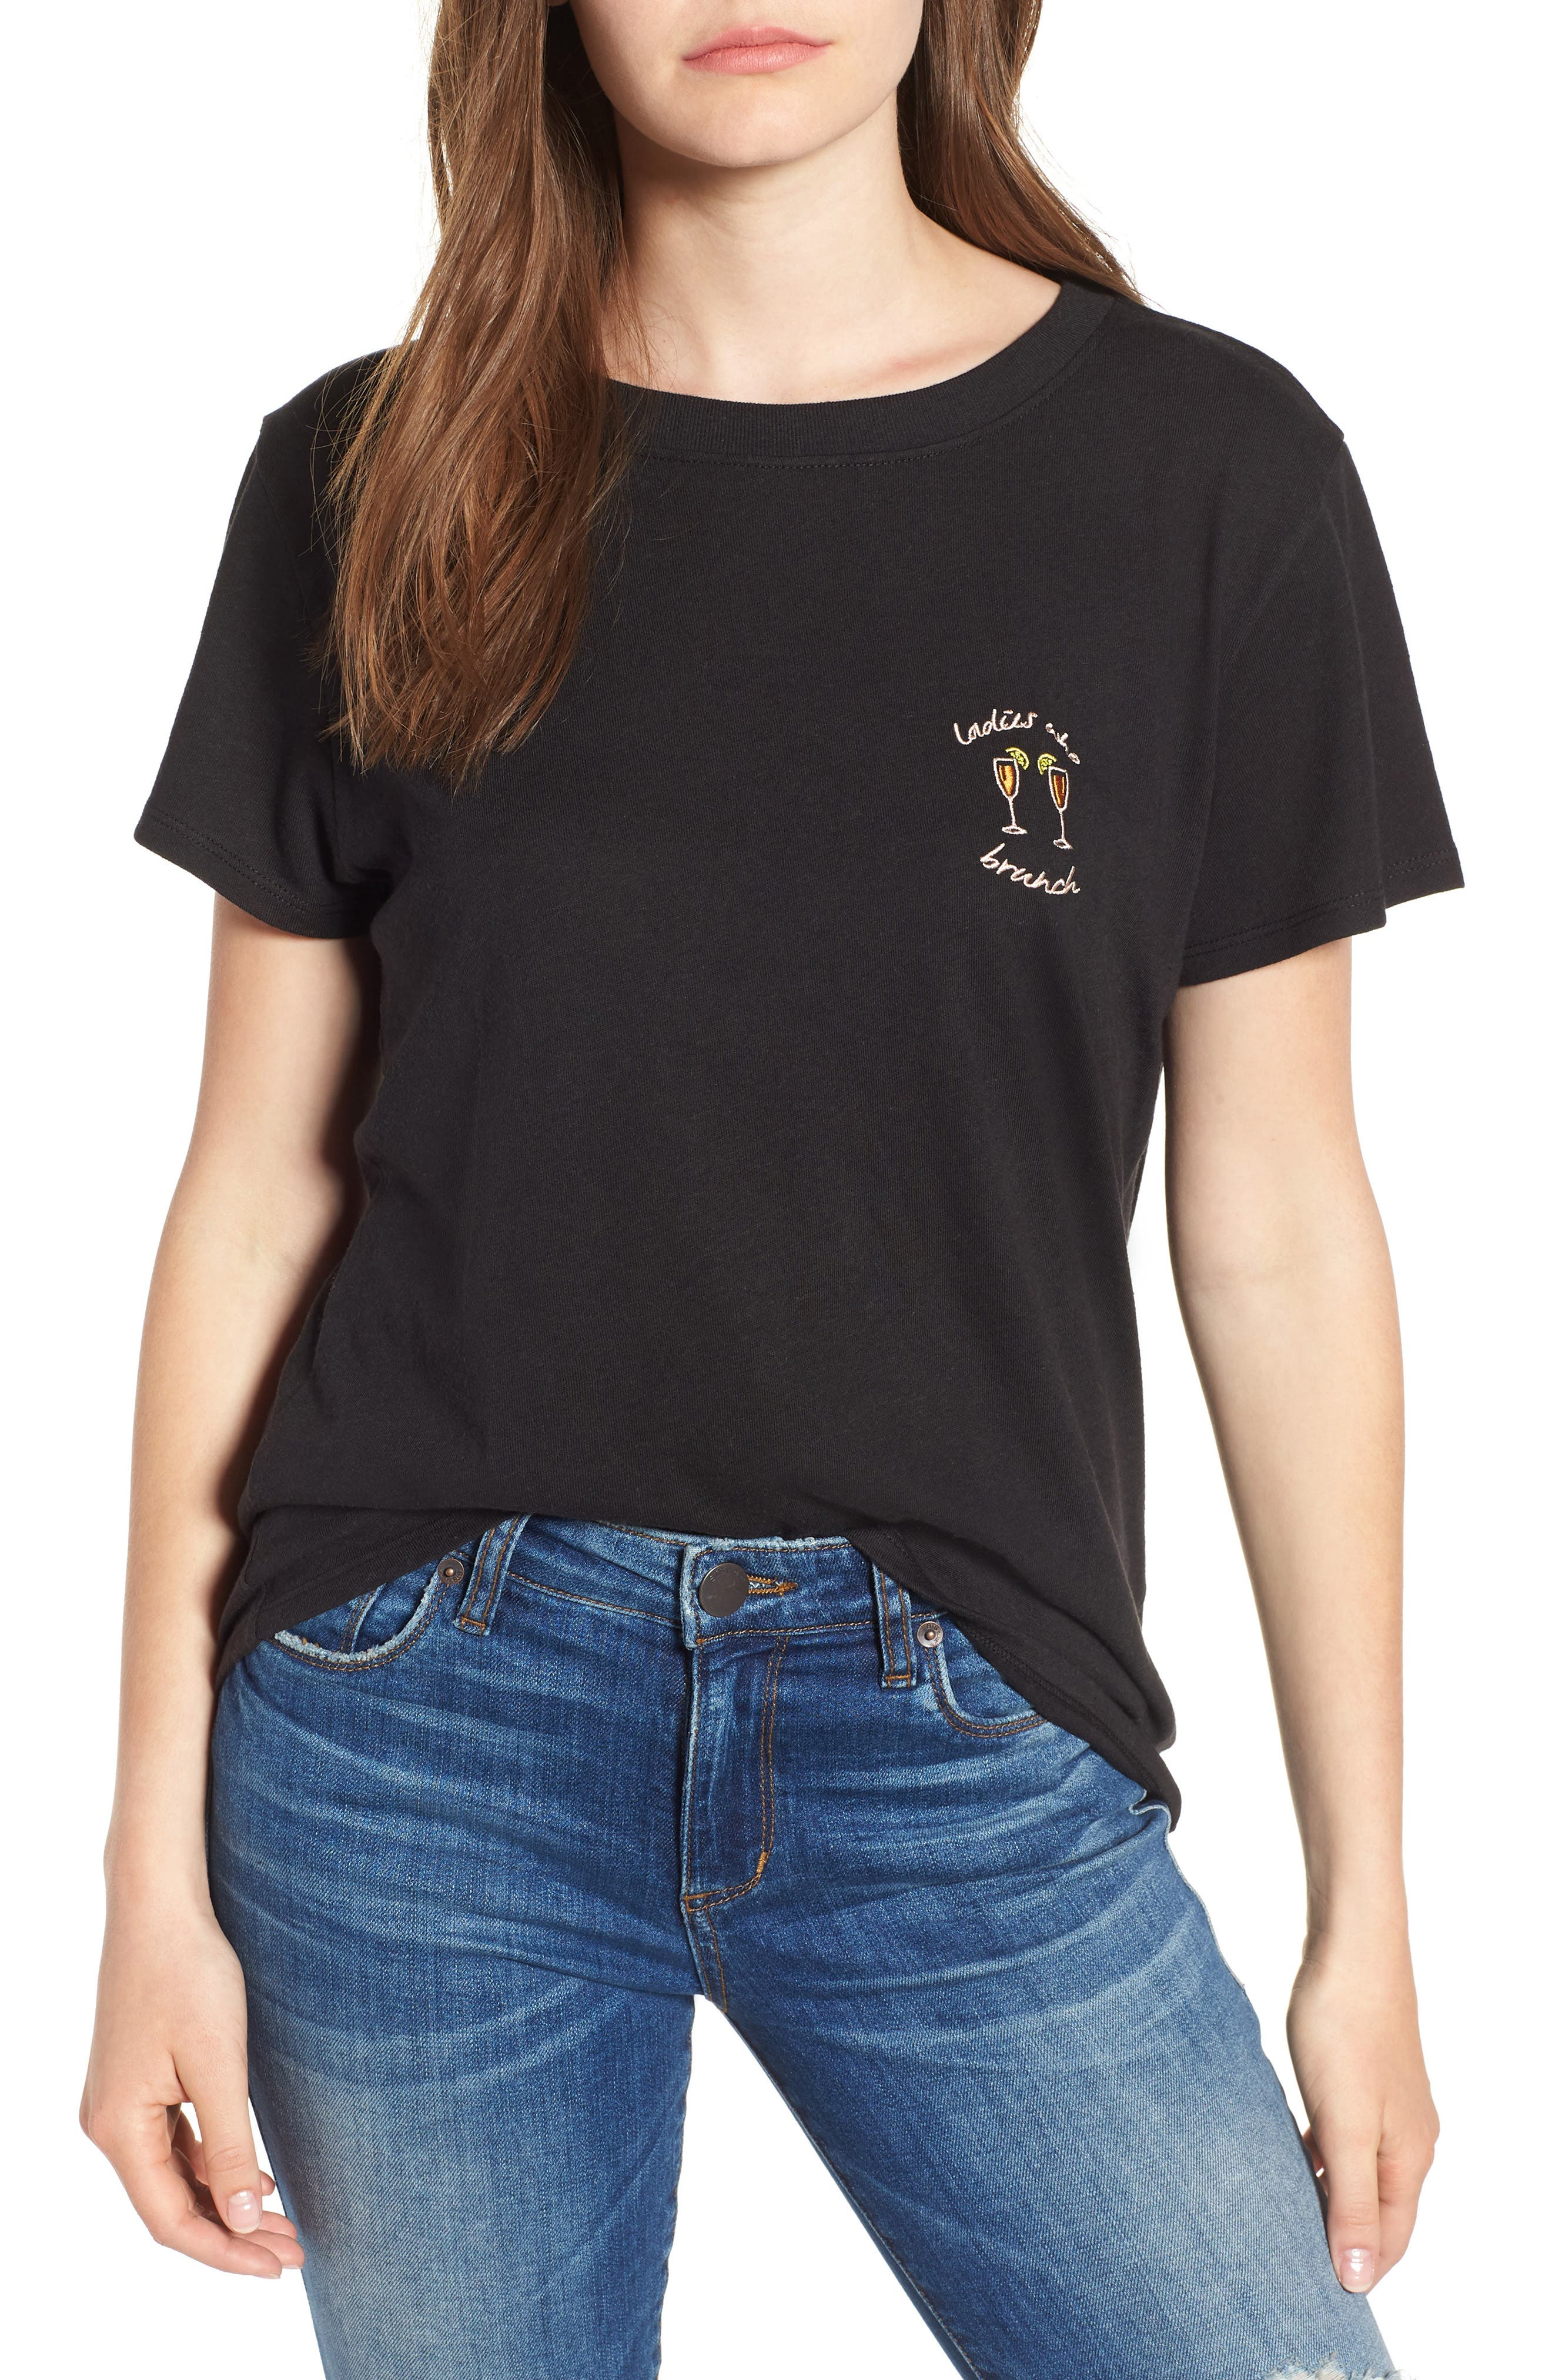 Ladies Who Brunch Slouched Tee,                             Main thumbnail 1, color,                             001